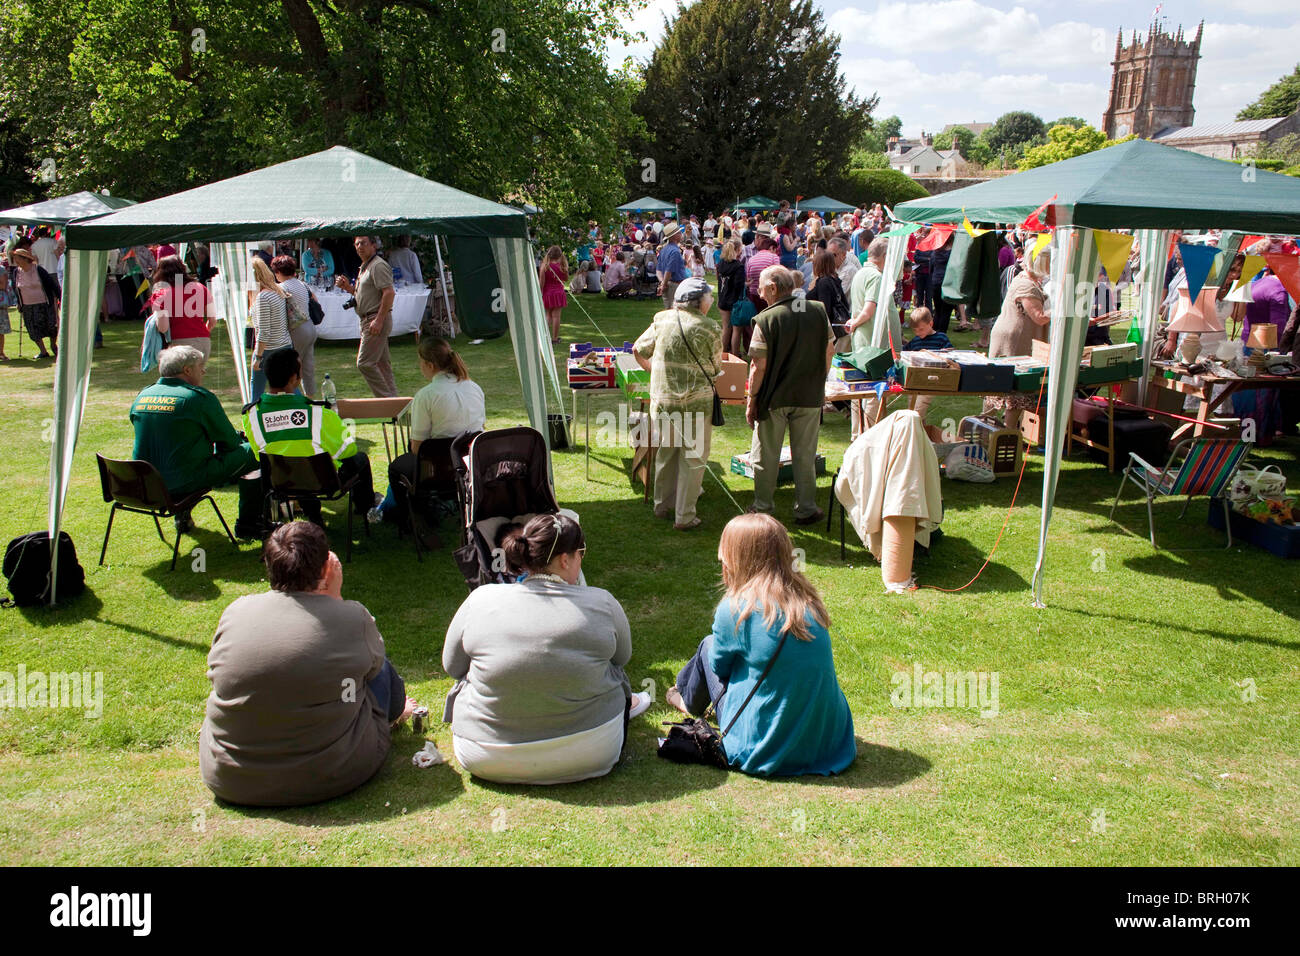 The annual summer Charminster Fete, in the village of Charminster, near Dorchester, Dorset.  DAVID MANSELL - Stock Image